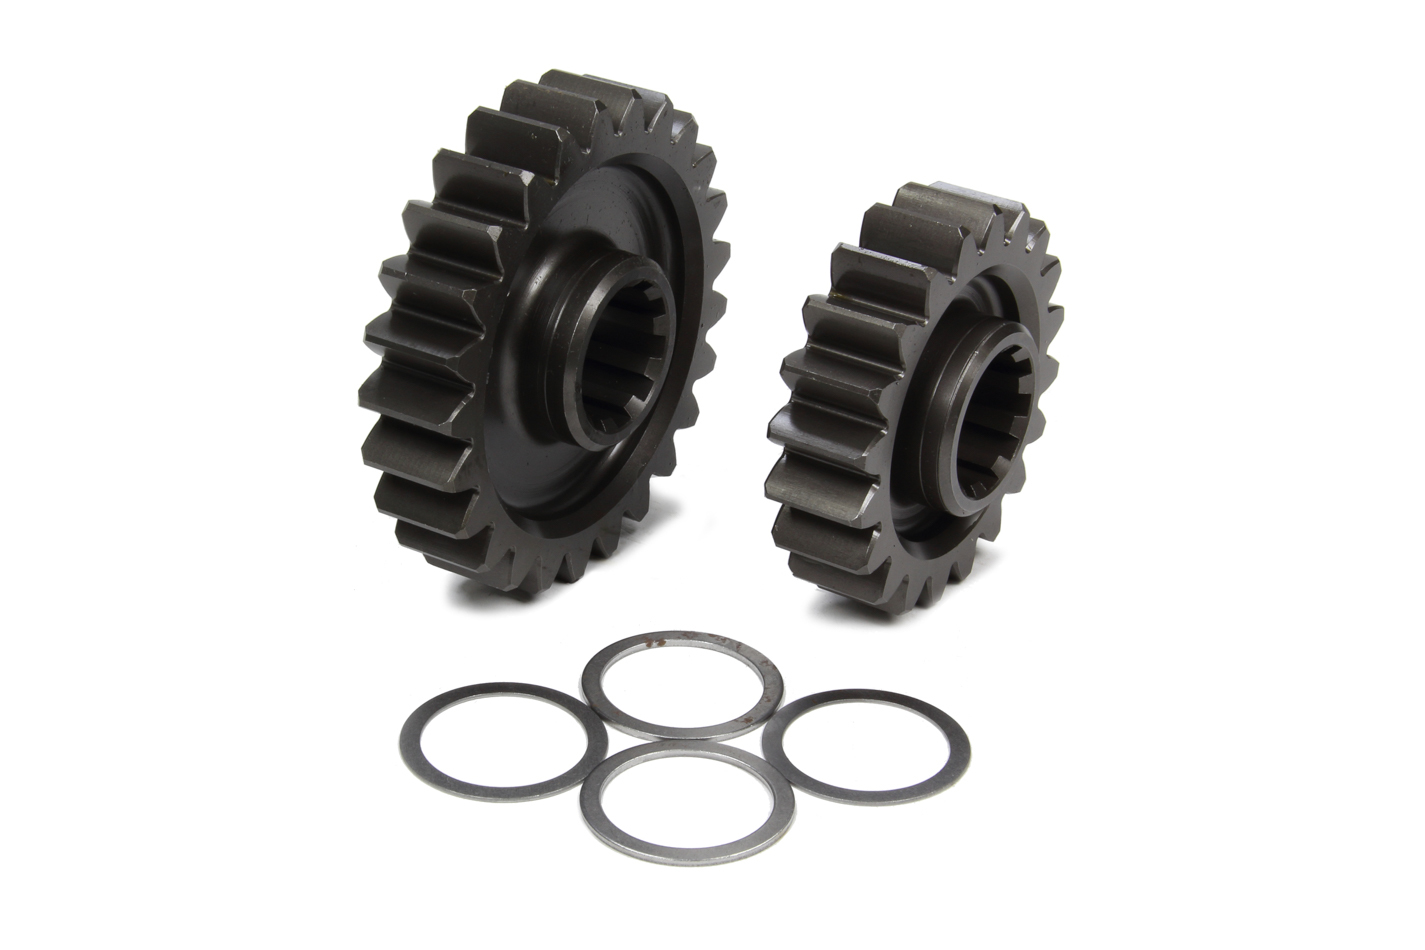 Coleman Machine 207-13 Quick Change Gear Set, Pro-Lite, Set 13, 10 Spline, 4.11 Ratios 5.14 / 3.28, 4.86 Ratios 6.07 / 3.89, Steel, Each